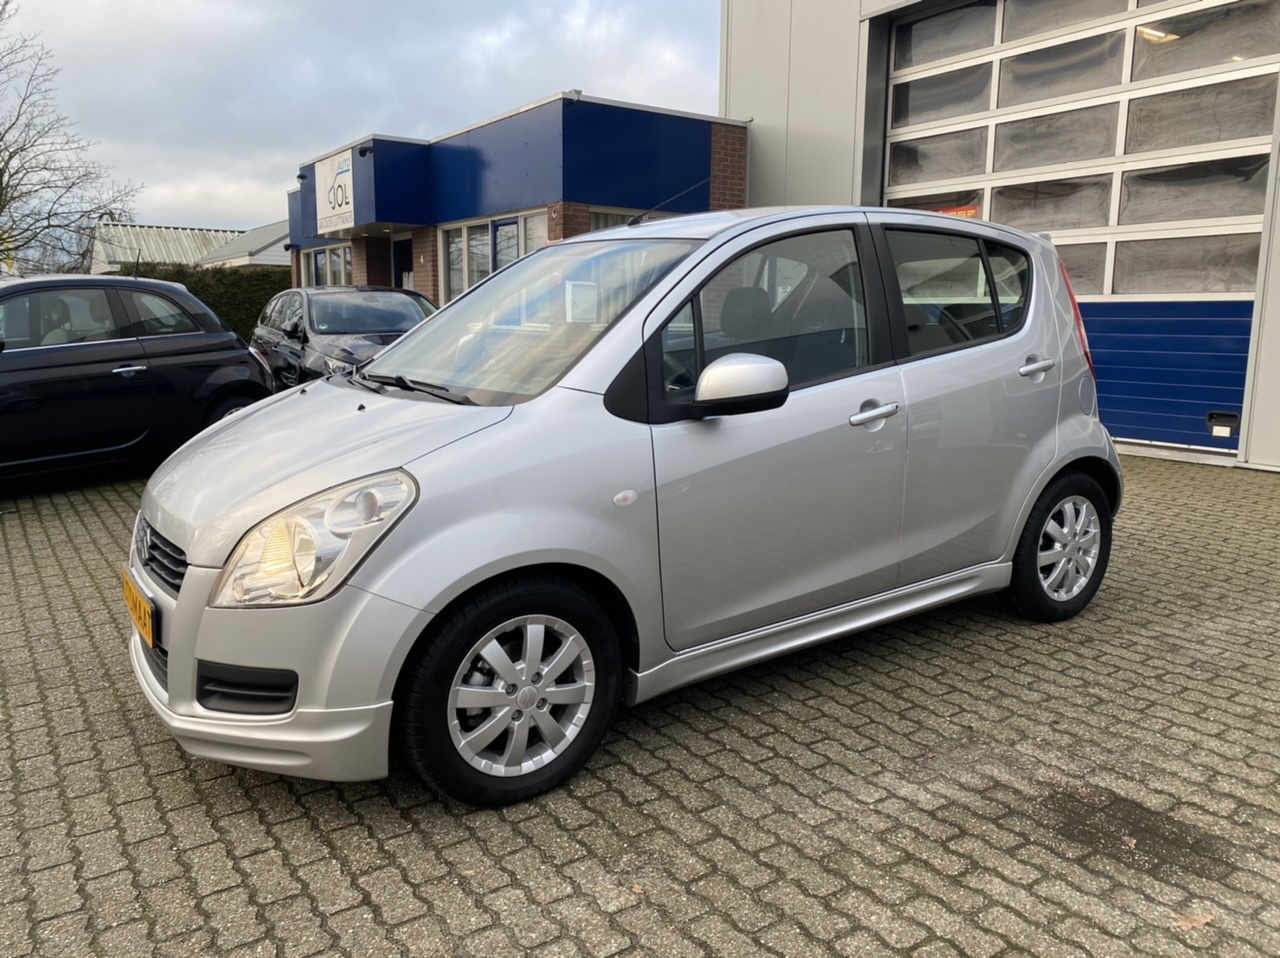 Suzuki Splash - 1.2 Exclusive EASSS - stoelverwarming - airco